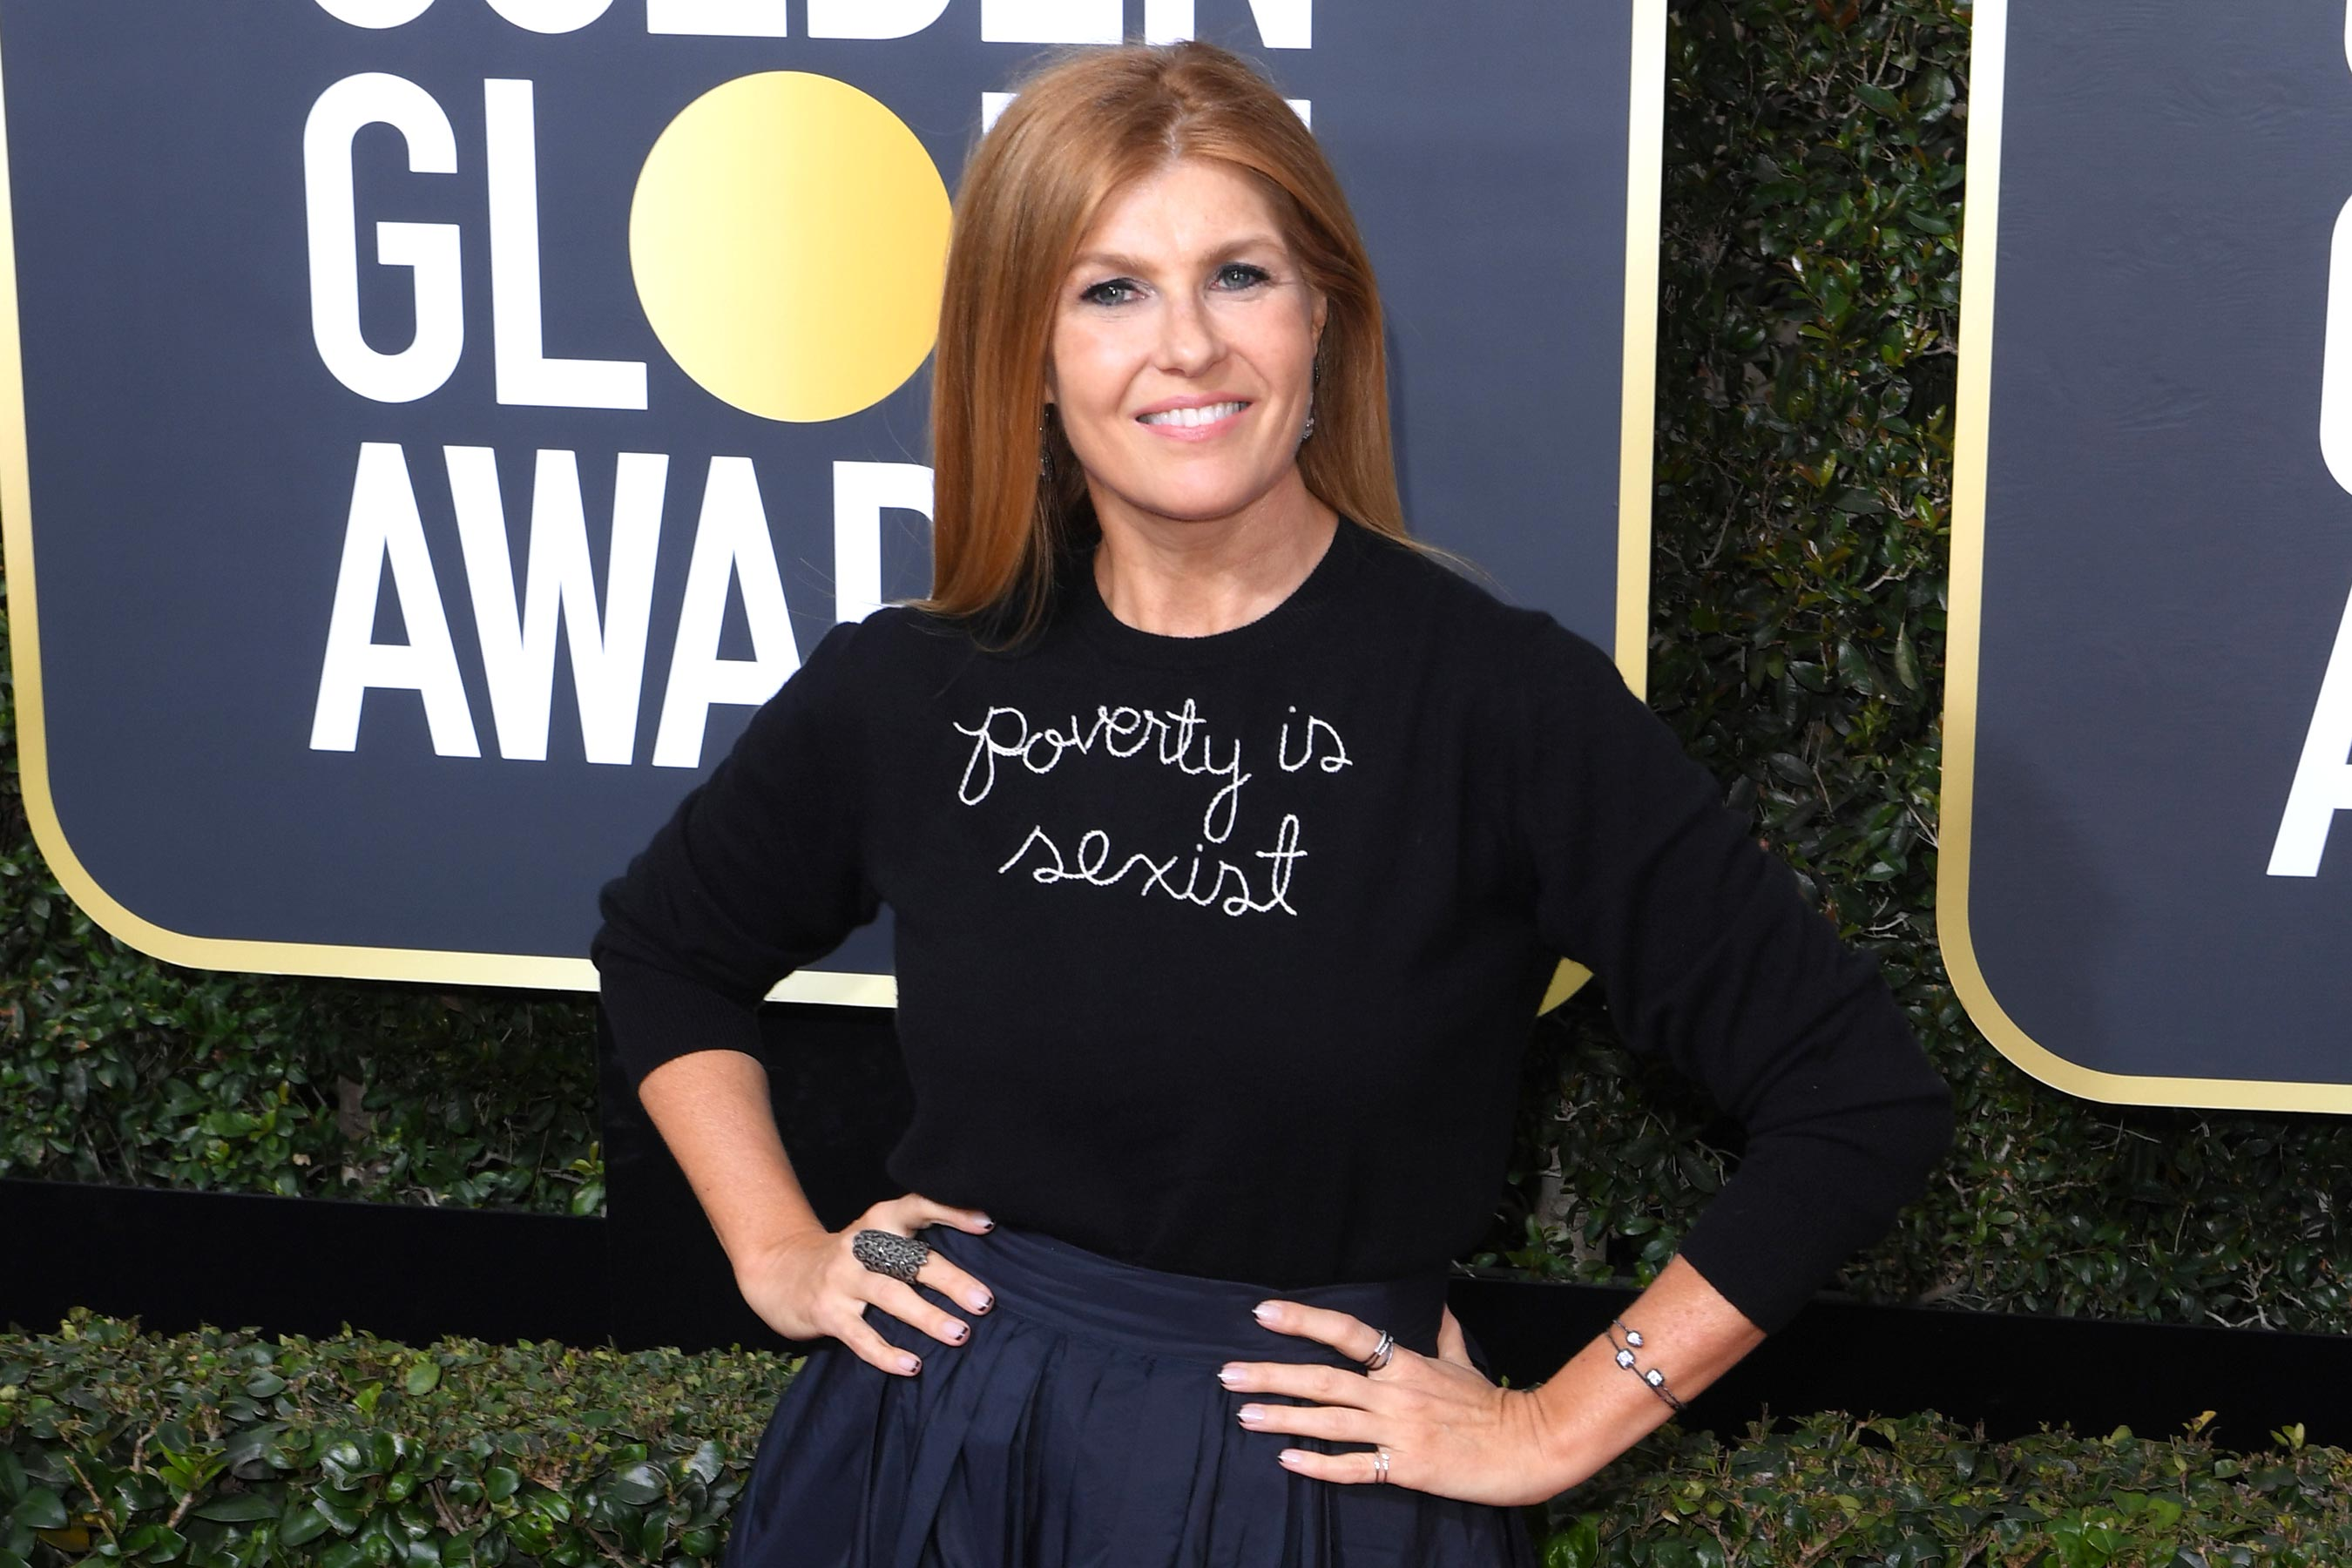 Connie Britton: Yes, poverty is sexist. Here's why.